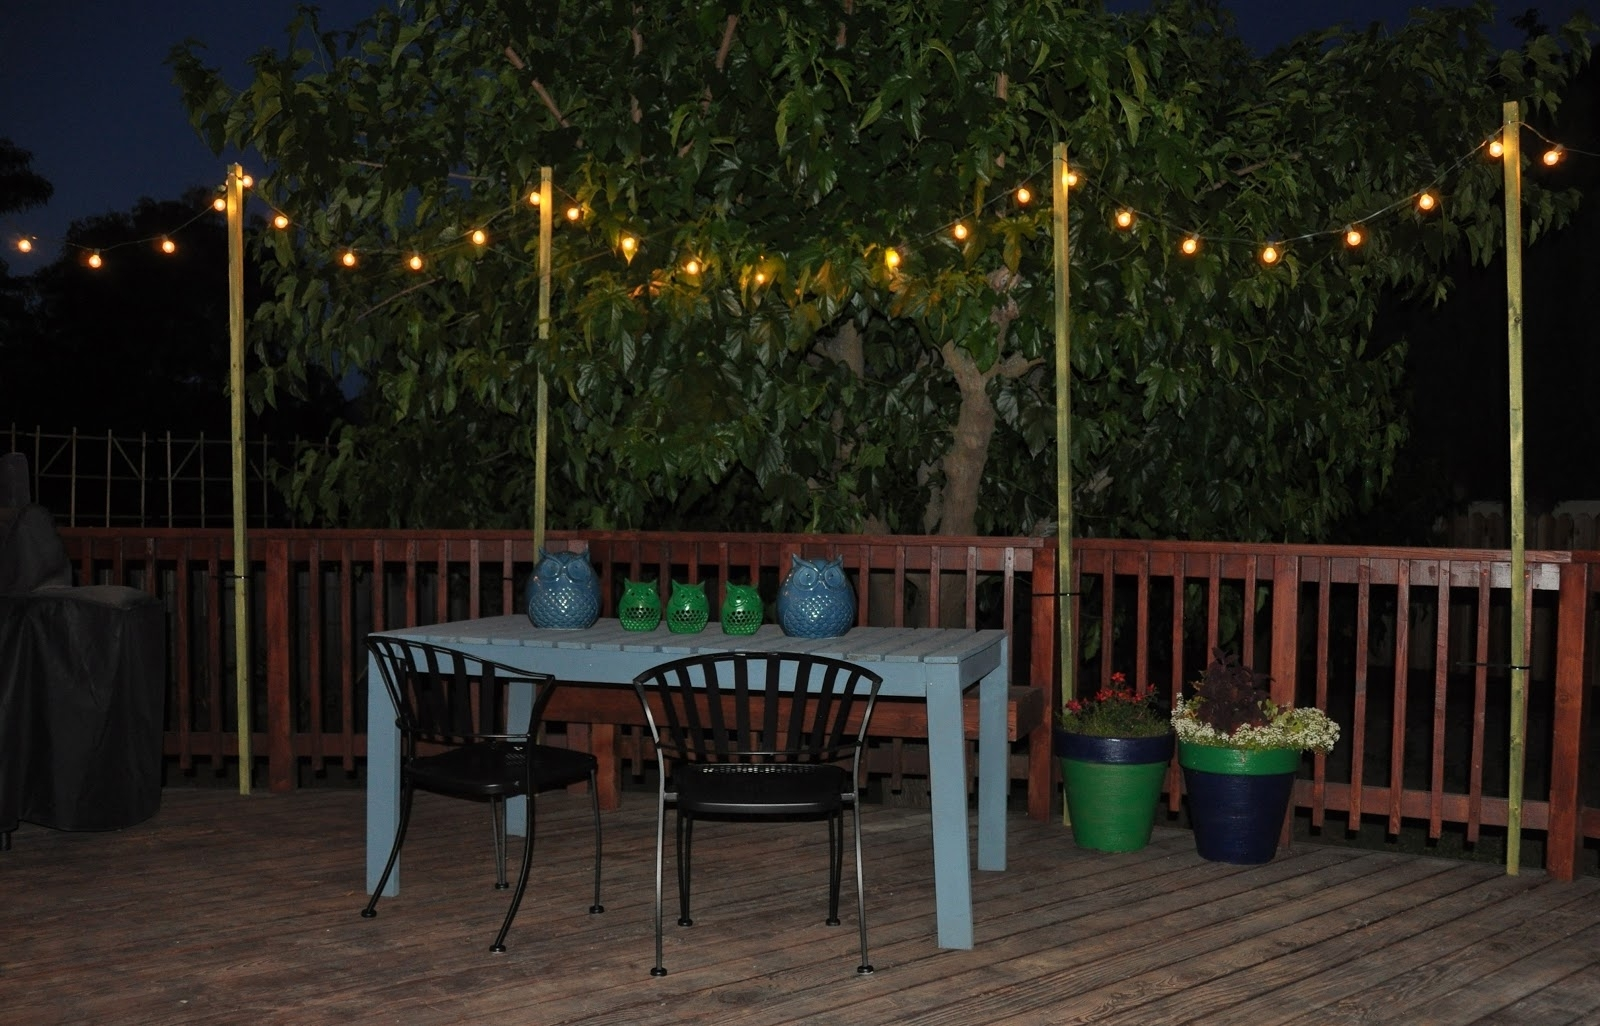 Trendy Glamorous Backyard String Lights Decorative Indoor Porch Led Hanging In Hanging Outdoor Lights In Backyard (View 19 of 20)